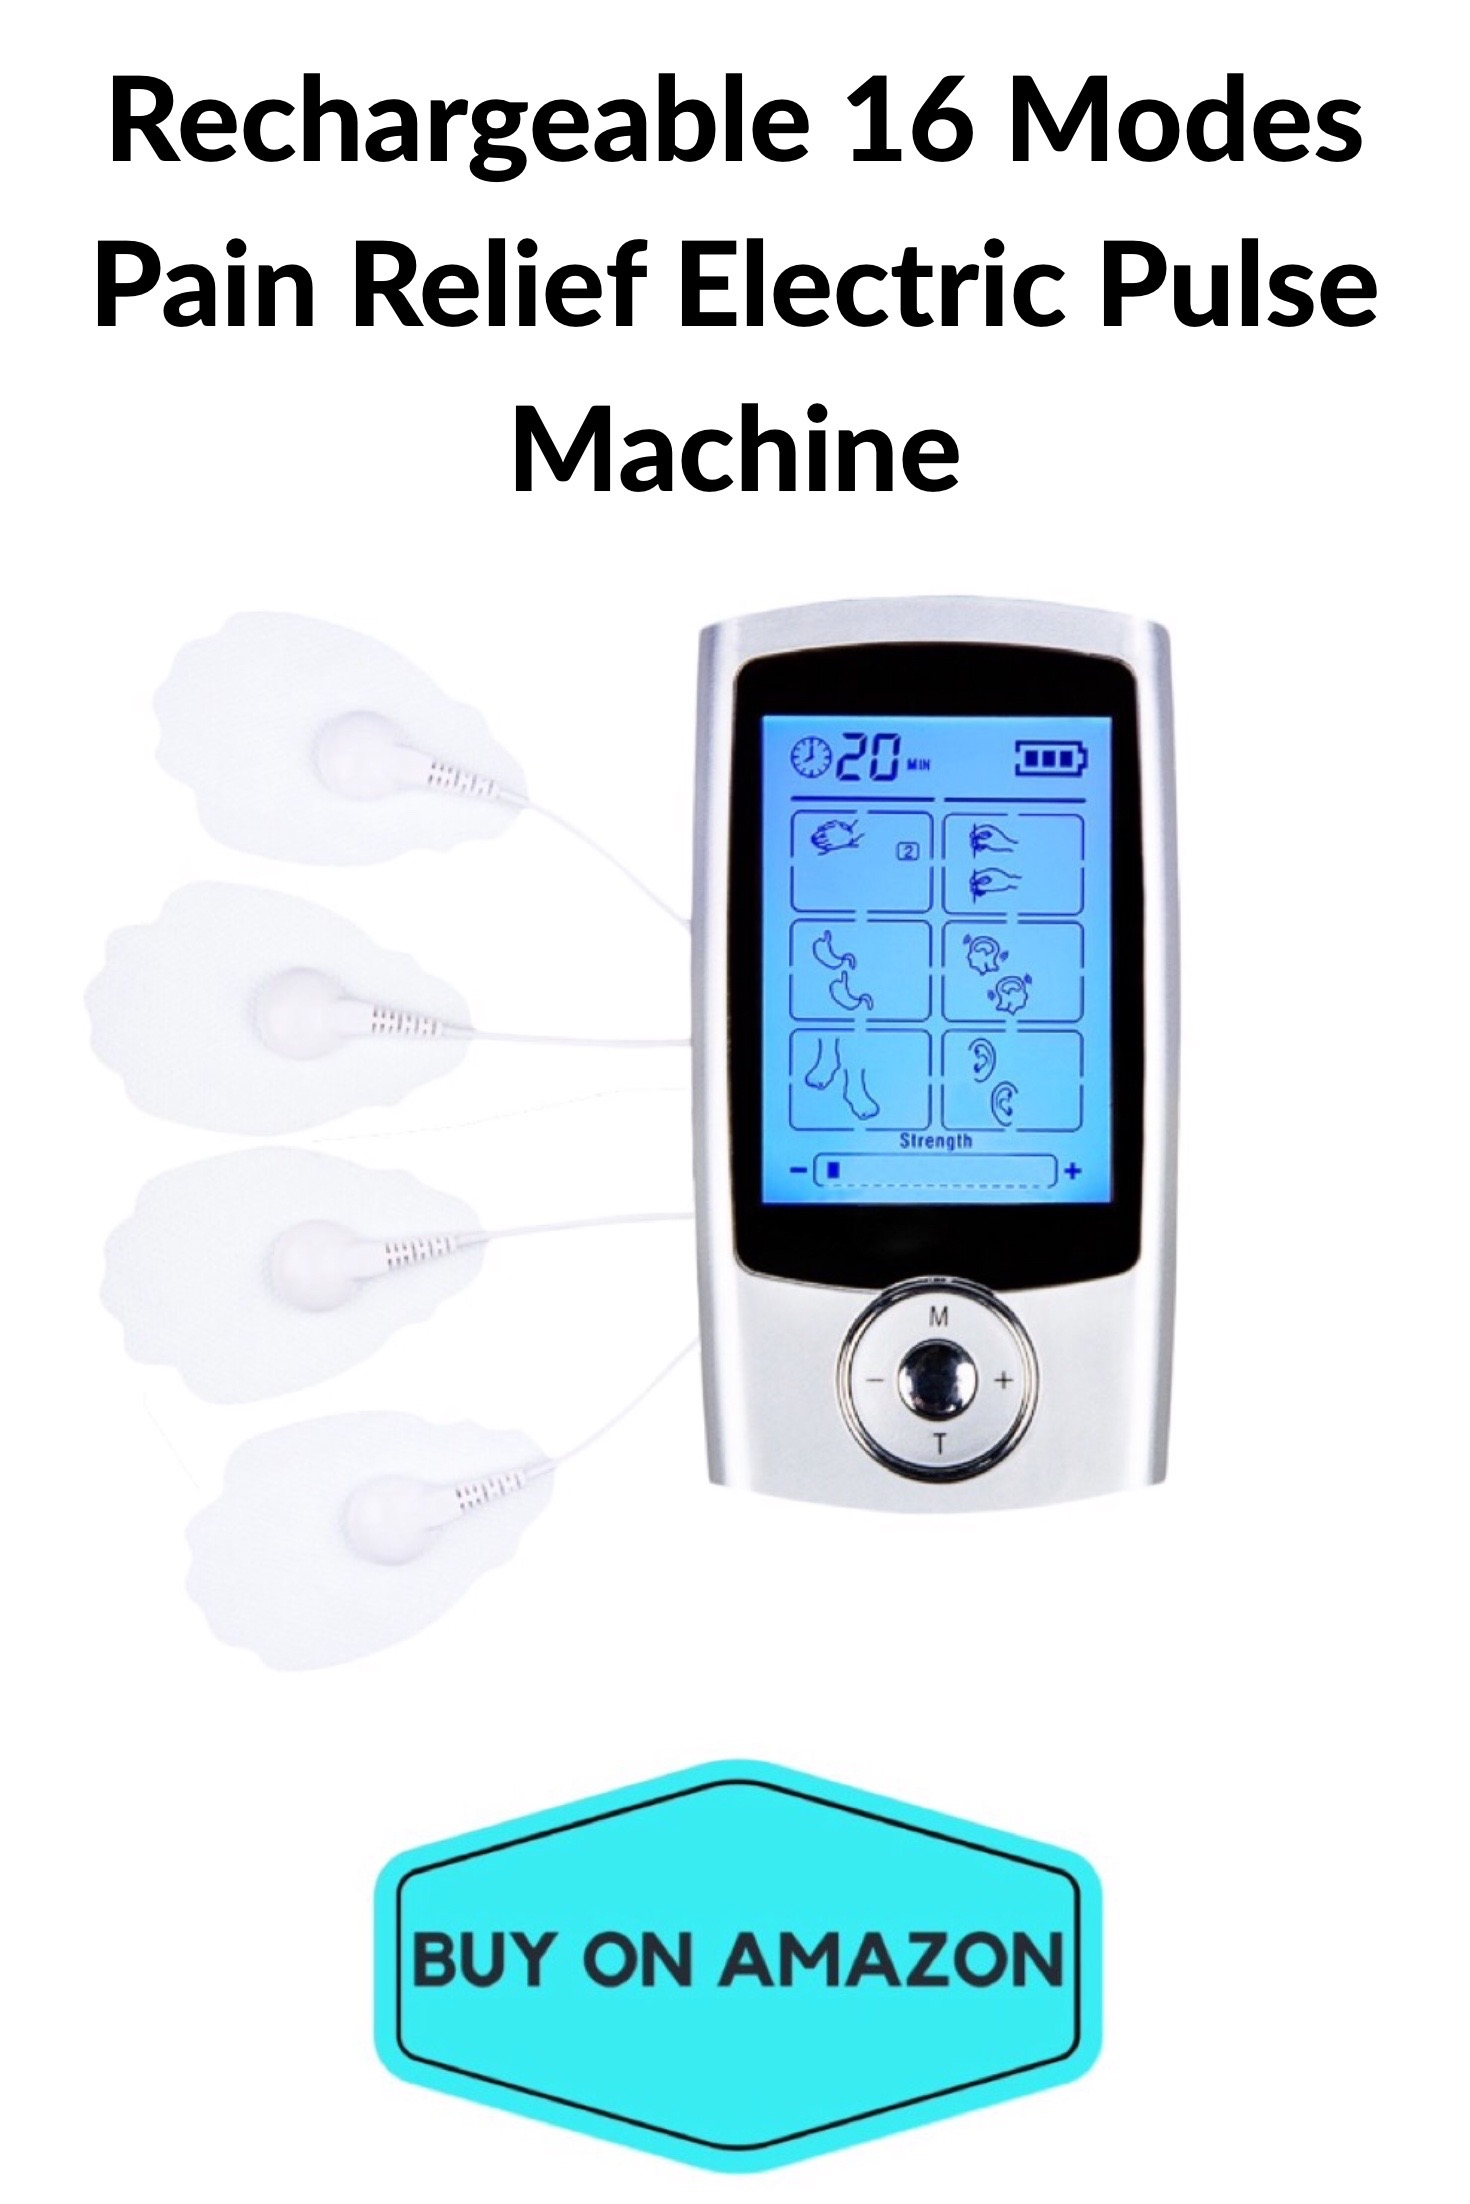 Rechargeable 16 Modes Pain Relief Electric Pulse Machine